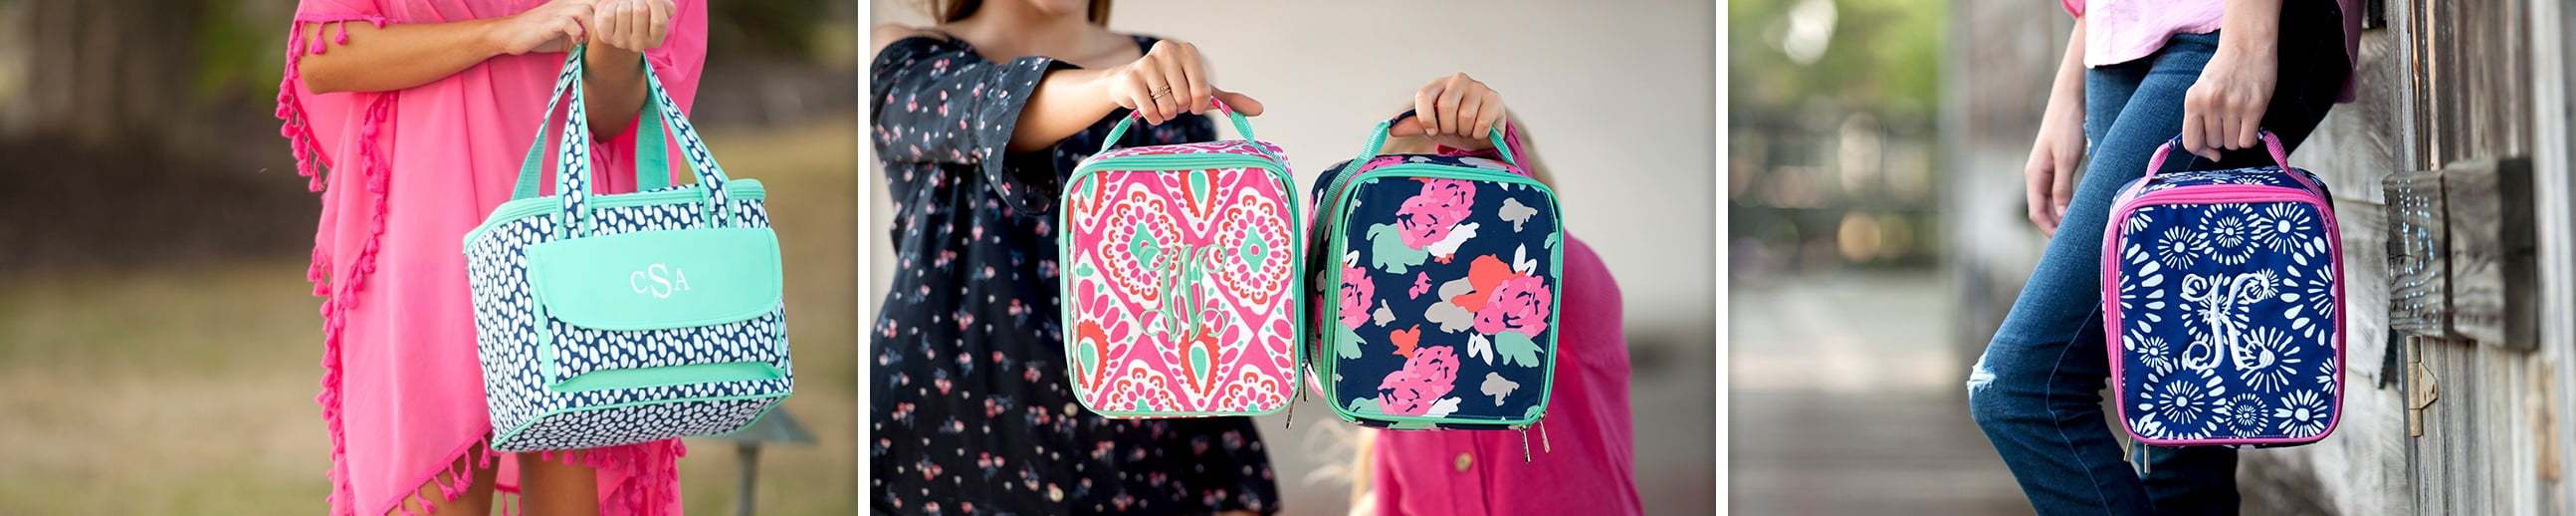 Wholesale Cooler Tote